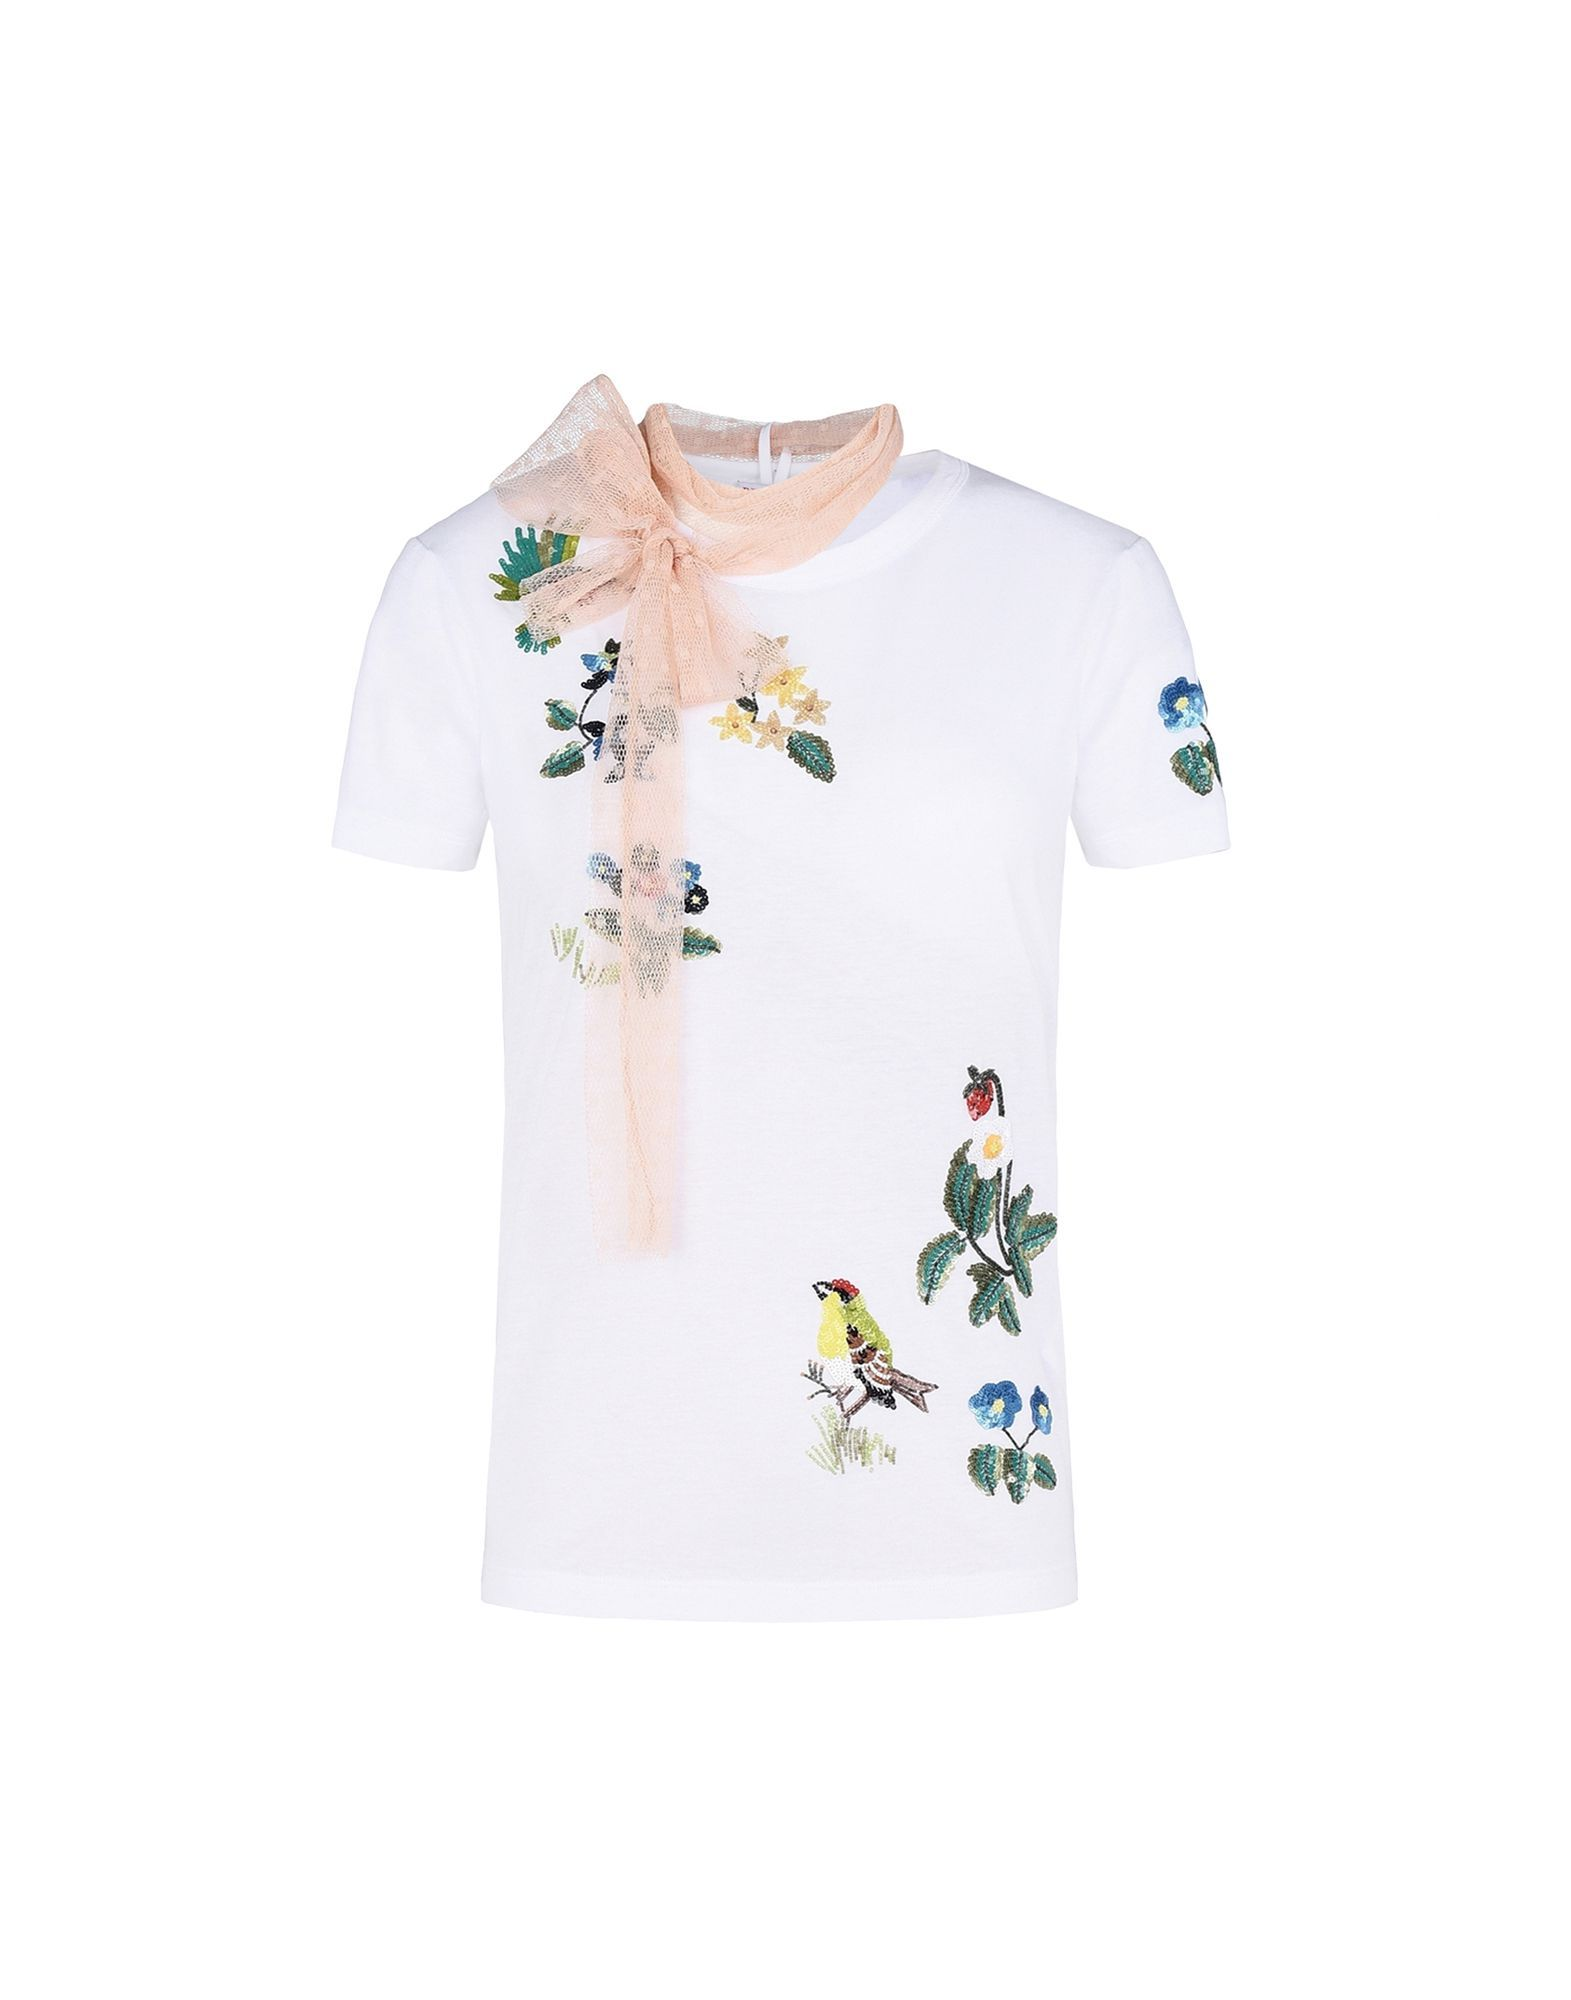 c81910cc7c91a1 RED Valentino Flower And Birds Embroidered t Shirt - T Shirt Women ...